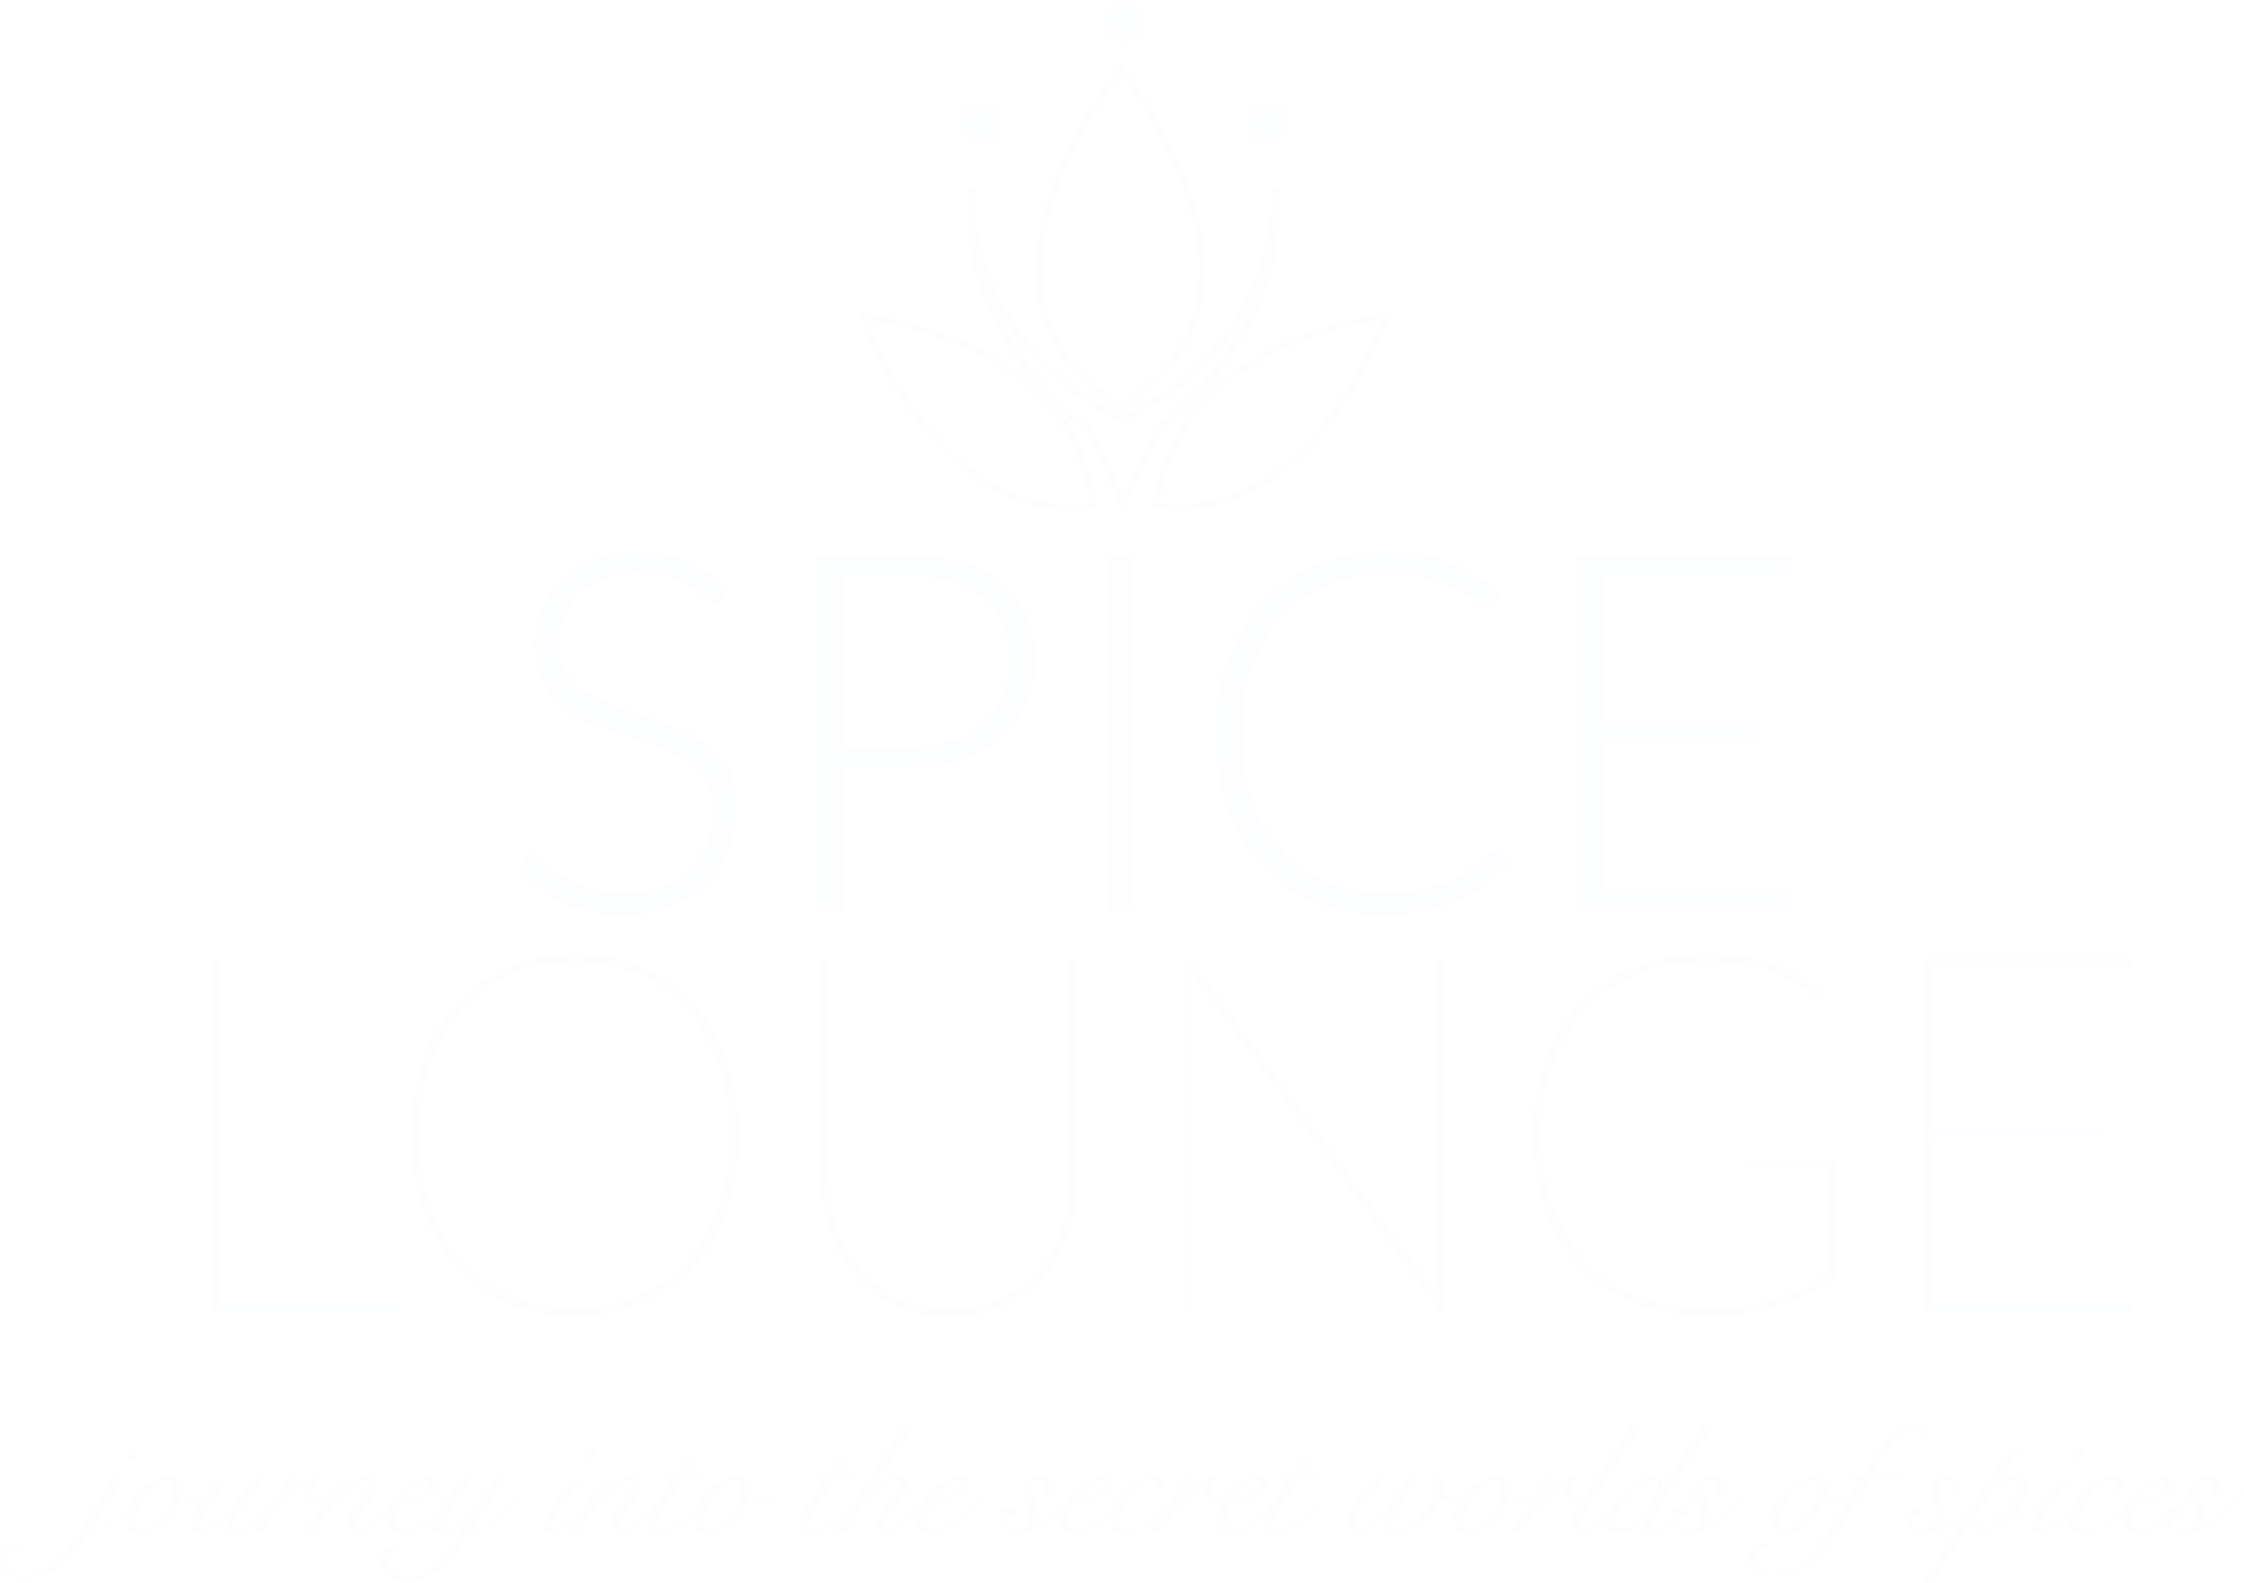 Spice Lounge event logo